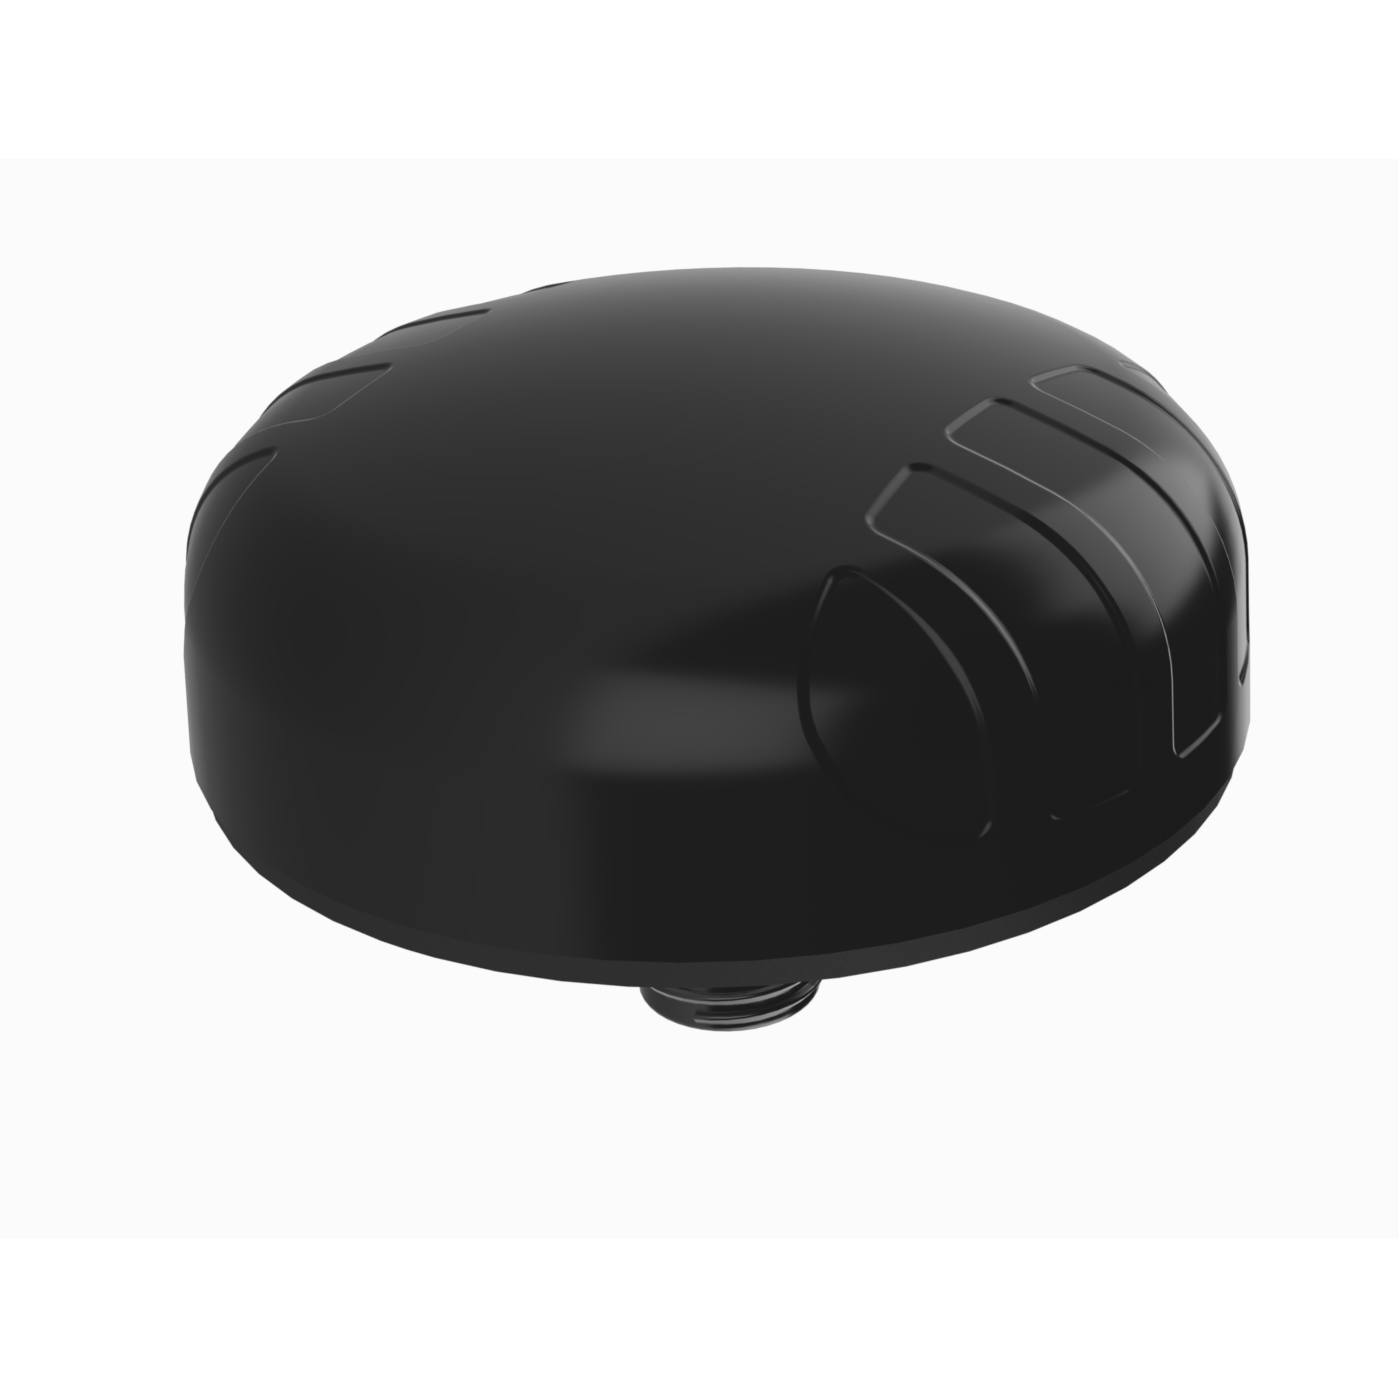 PUCK-5:ANTENNA 5 IN 1; 2 × 2 MIMO LTE: 690 MHZ - 3800 MHZ, 2 × 2 MIMO WI-FI: DUALBAND 2.4 - 2.5 e 5-6 GHZ, GPS